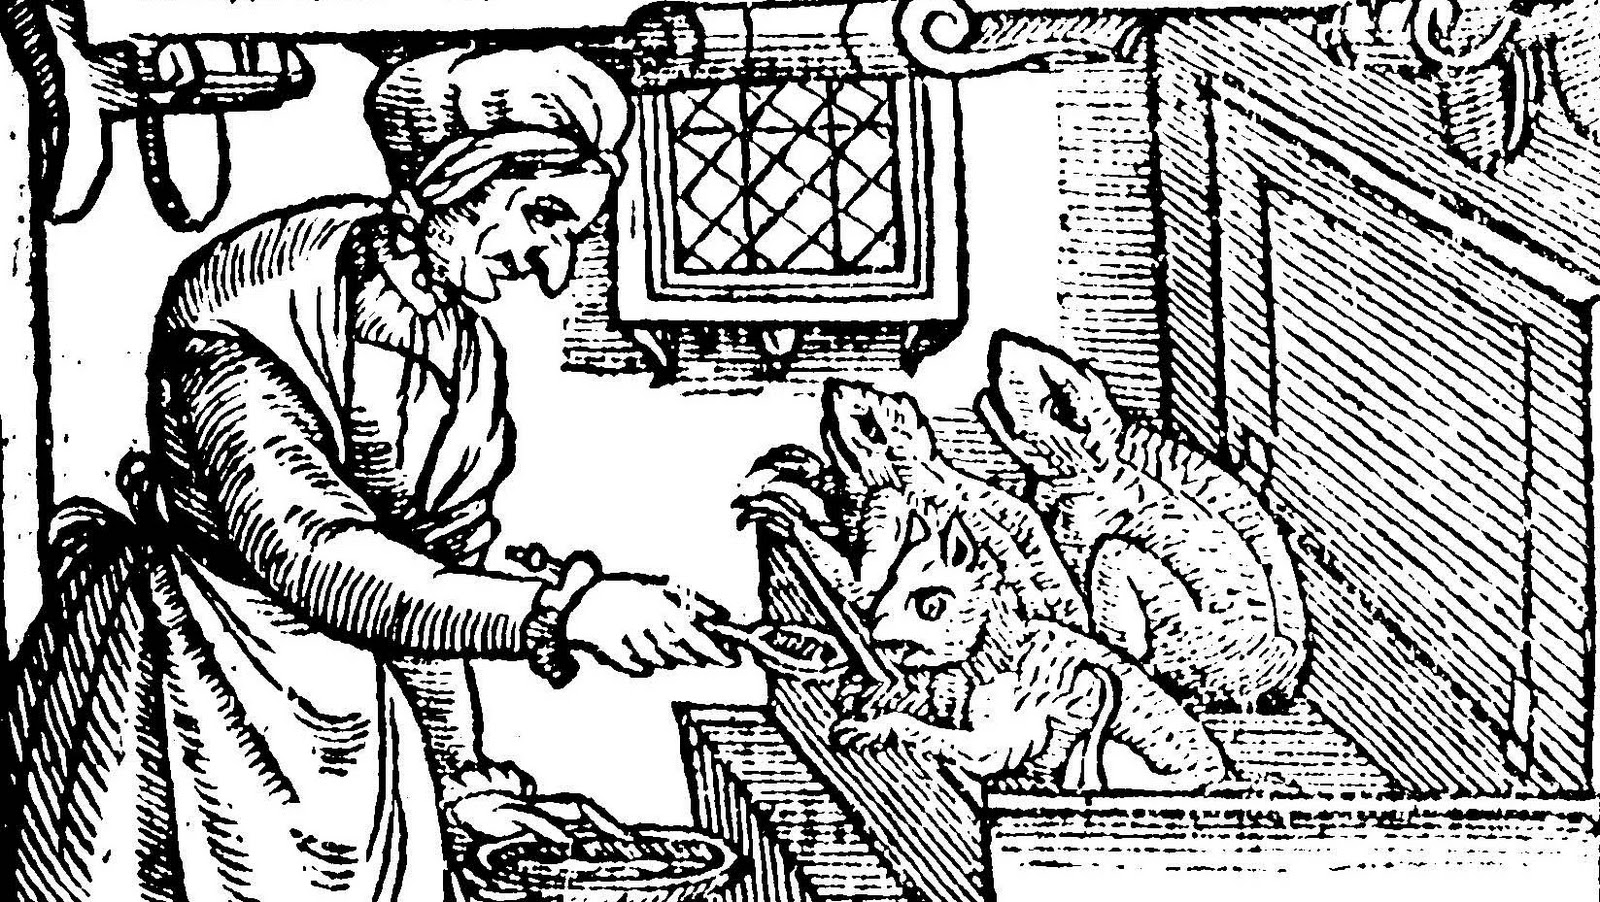 witchcraft in the elizabethan era The english have long believed in witches, but this reached a fever-pitch in the jacobean era in this lesson, we'll explore jacobean england and see why their fear of witchcraft reached such.